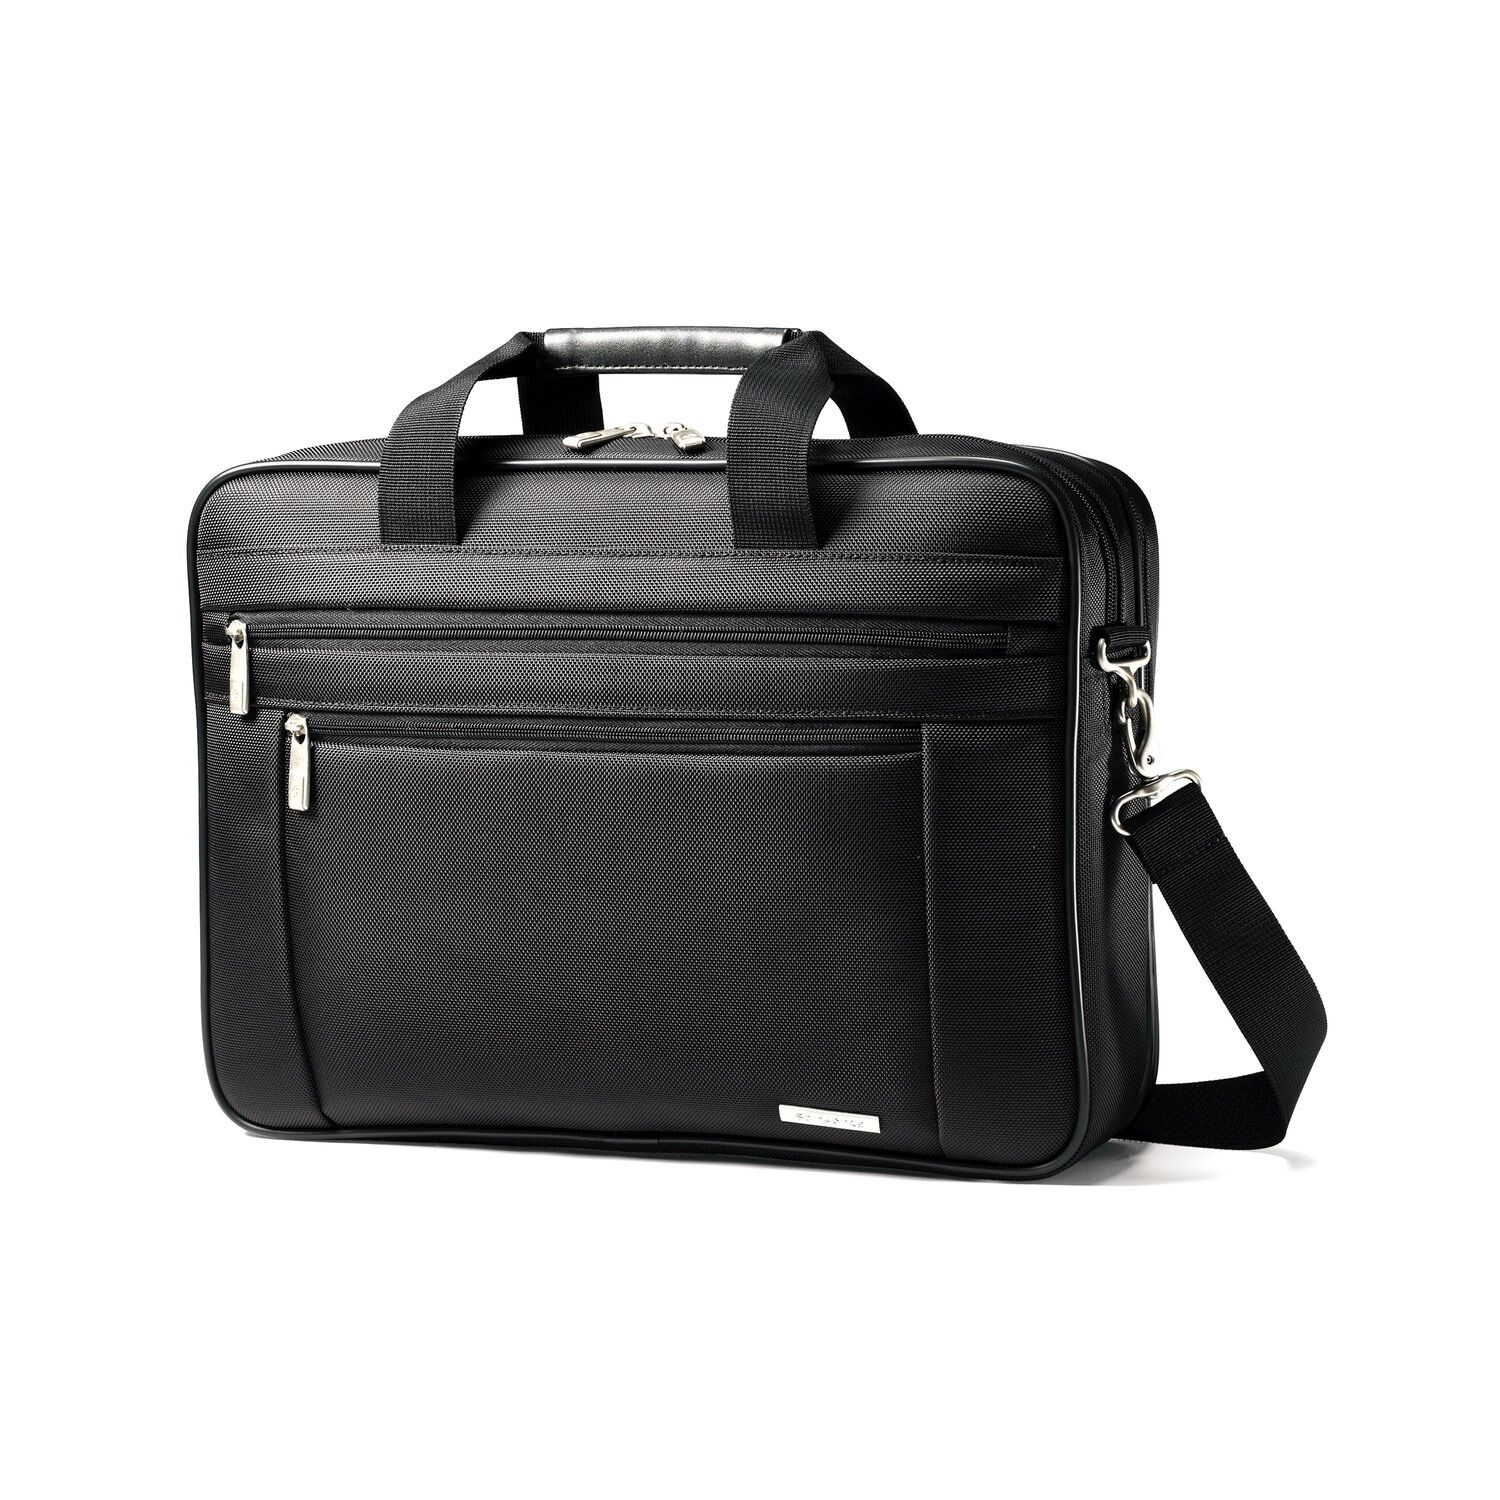 Samsonite Classic Business Laptop Bag 17 Quot